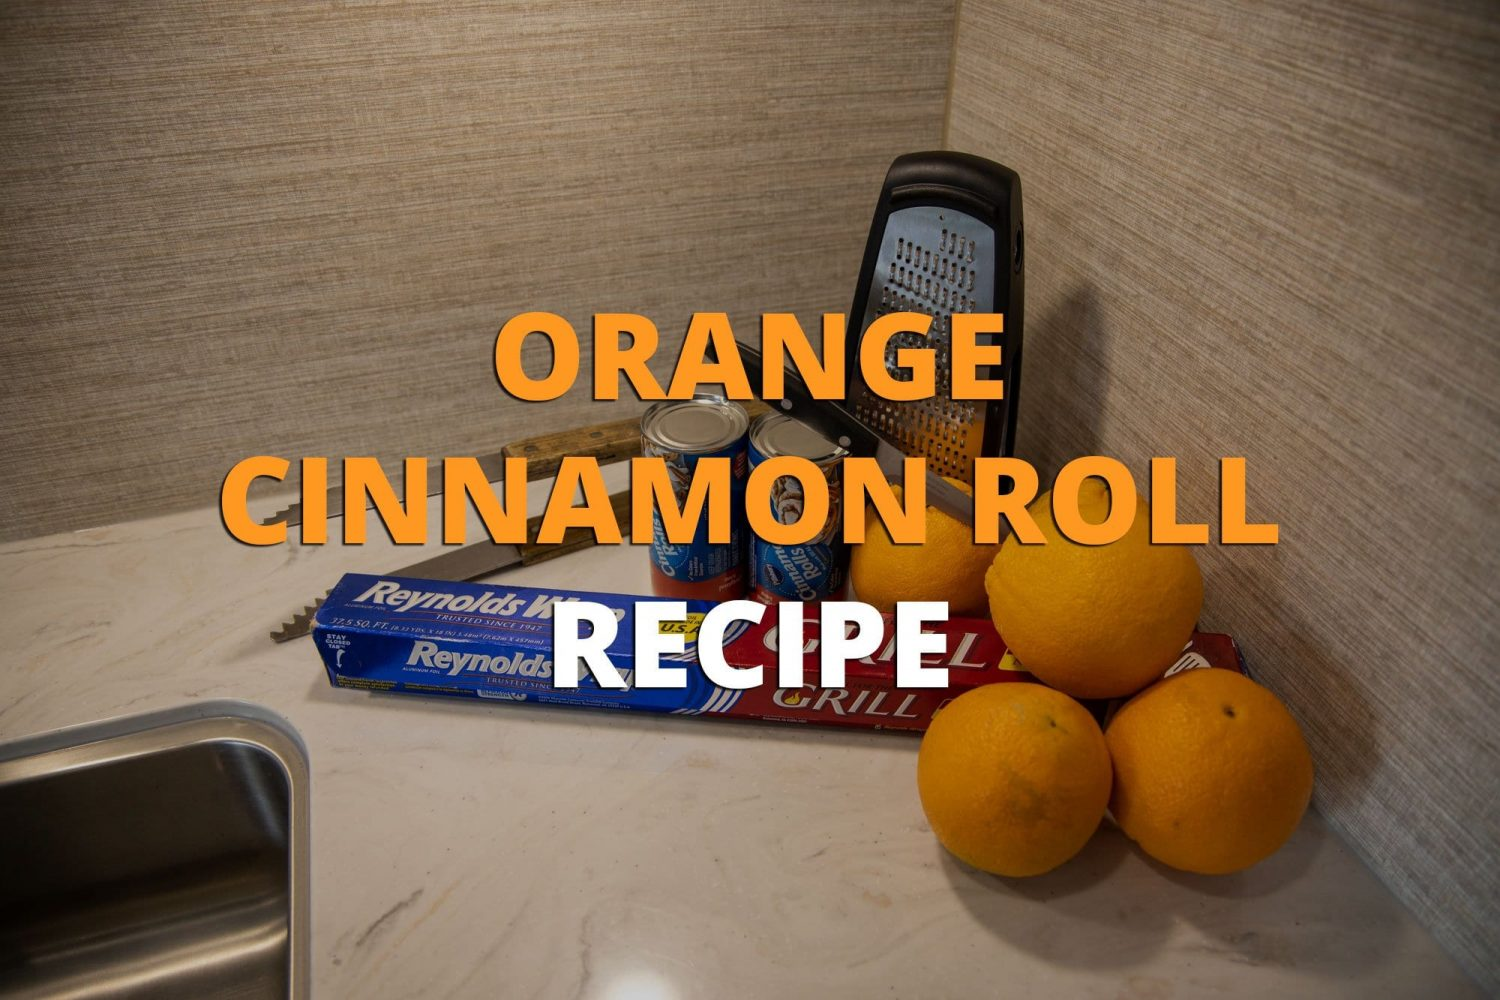 Orange Cinnamon Roll Recipe